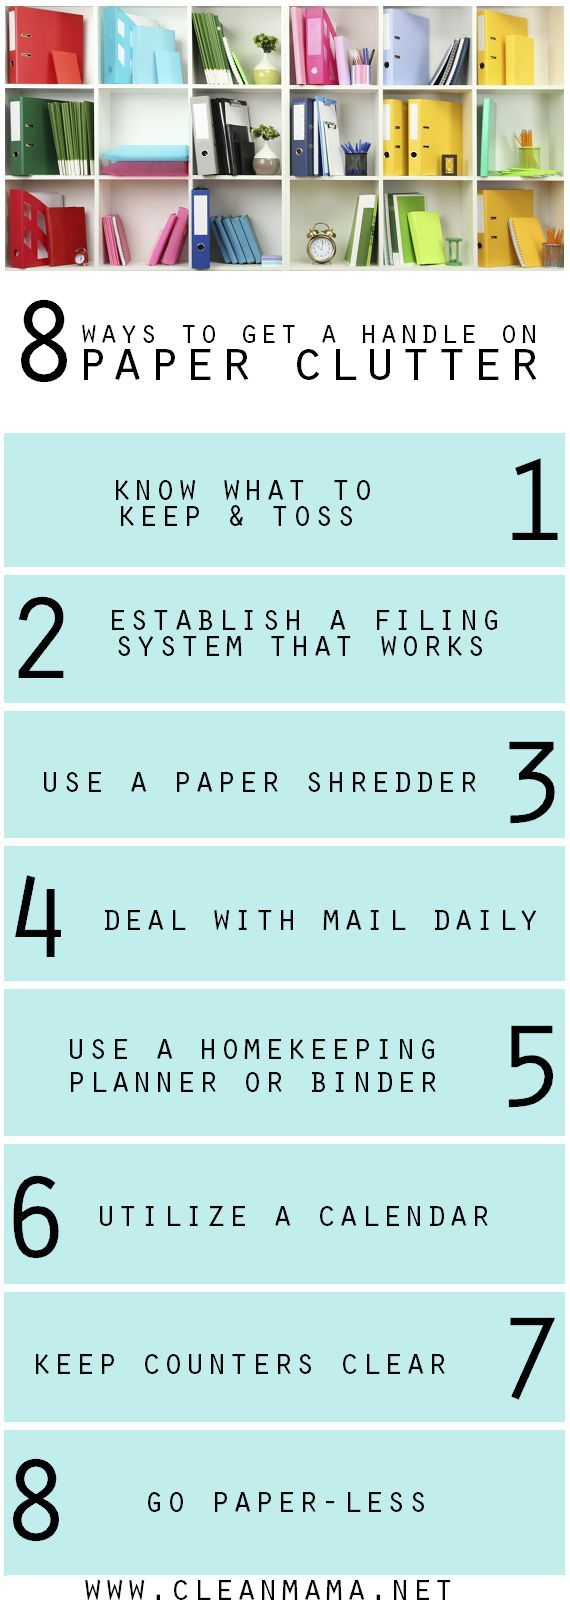 17 best images about clutter solutions also check organization on pinterest how to get rid - Important thing consider decluttering ...